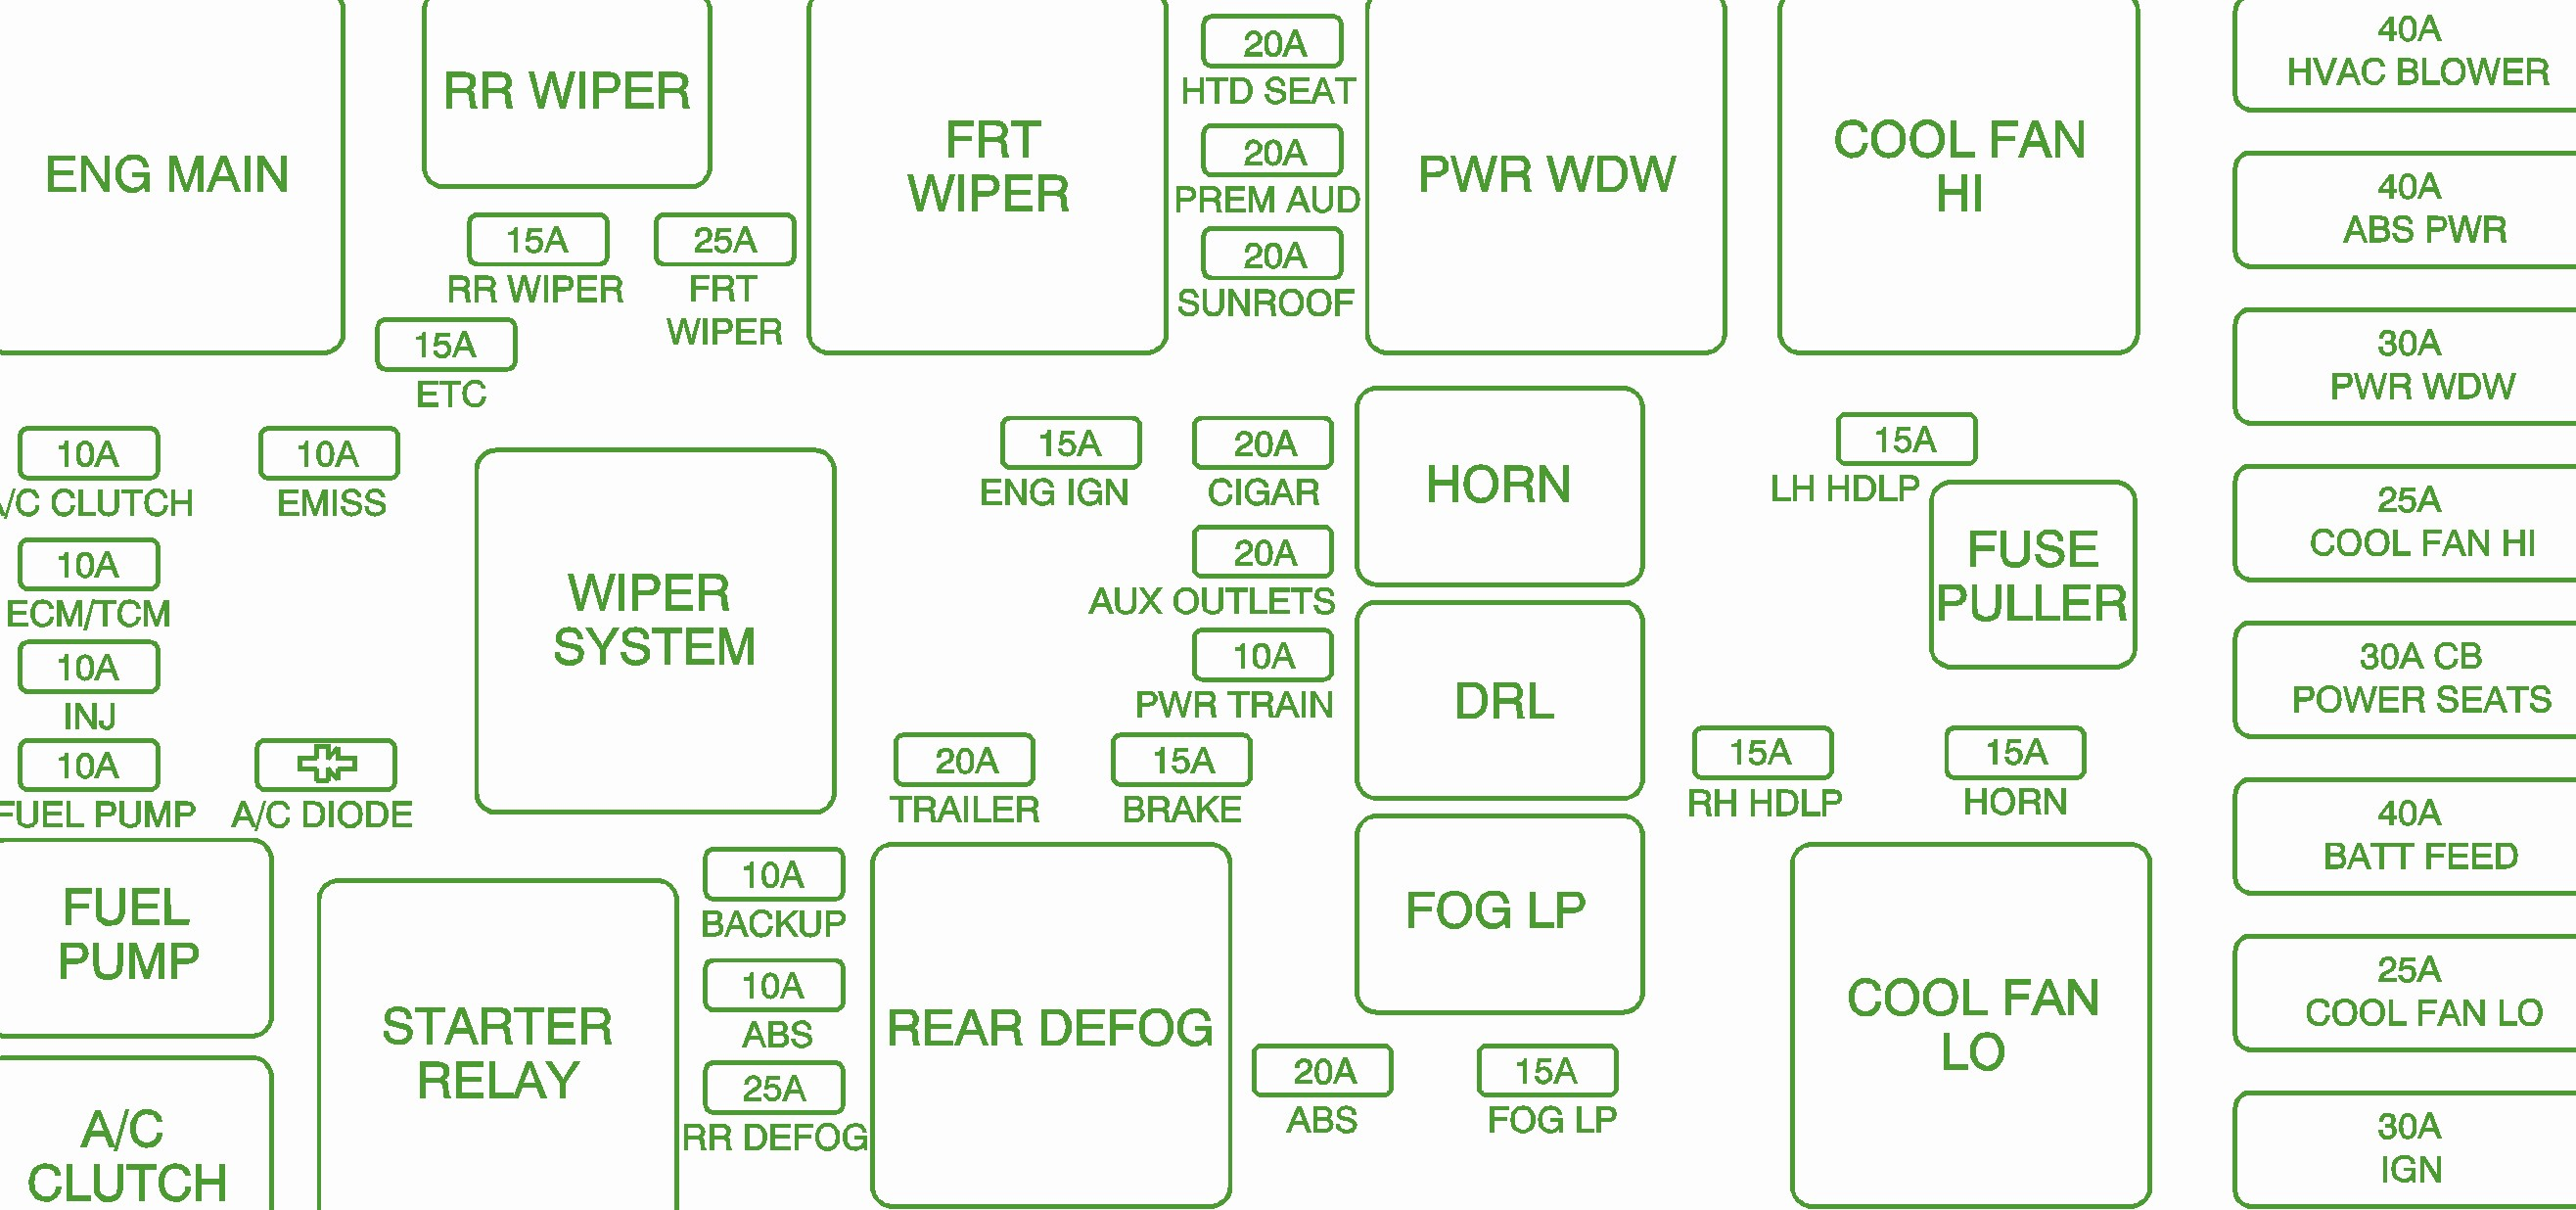 2009 Scion Xb Fuse Box Diagram Wiring Diagram \u2022 2006 Scion TC Fuse  Diagram 2008